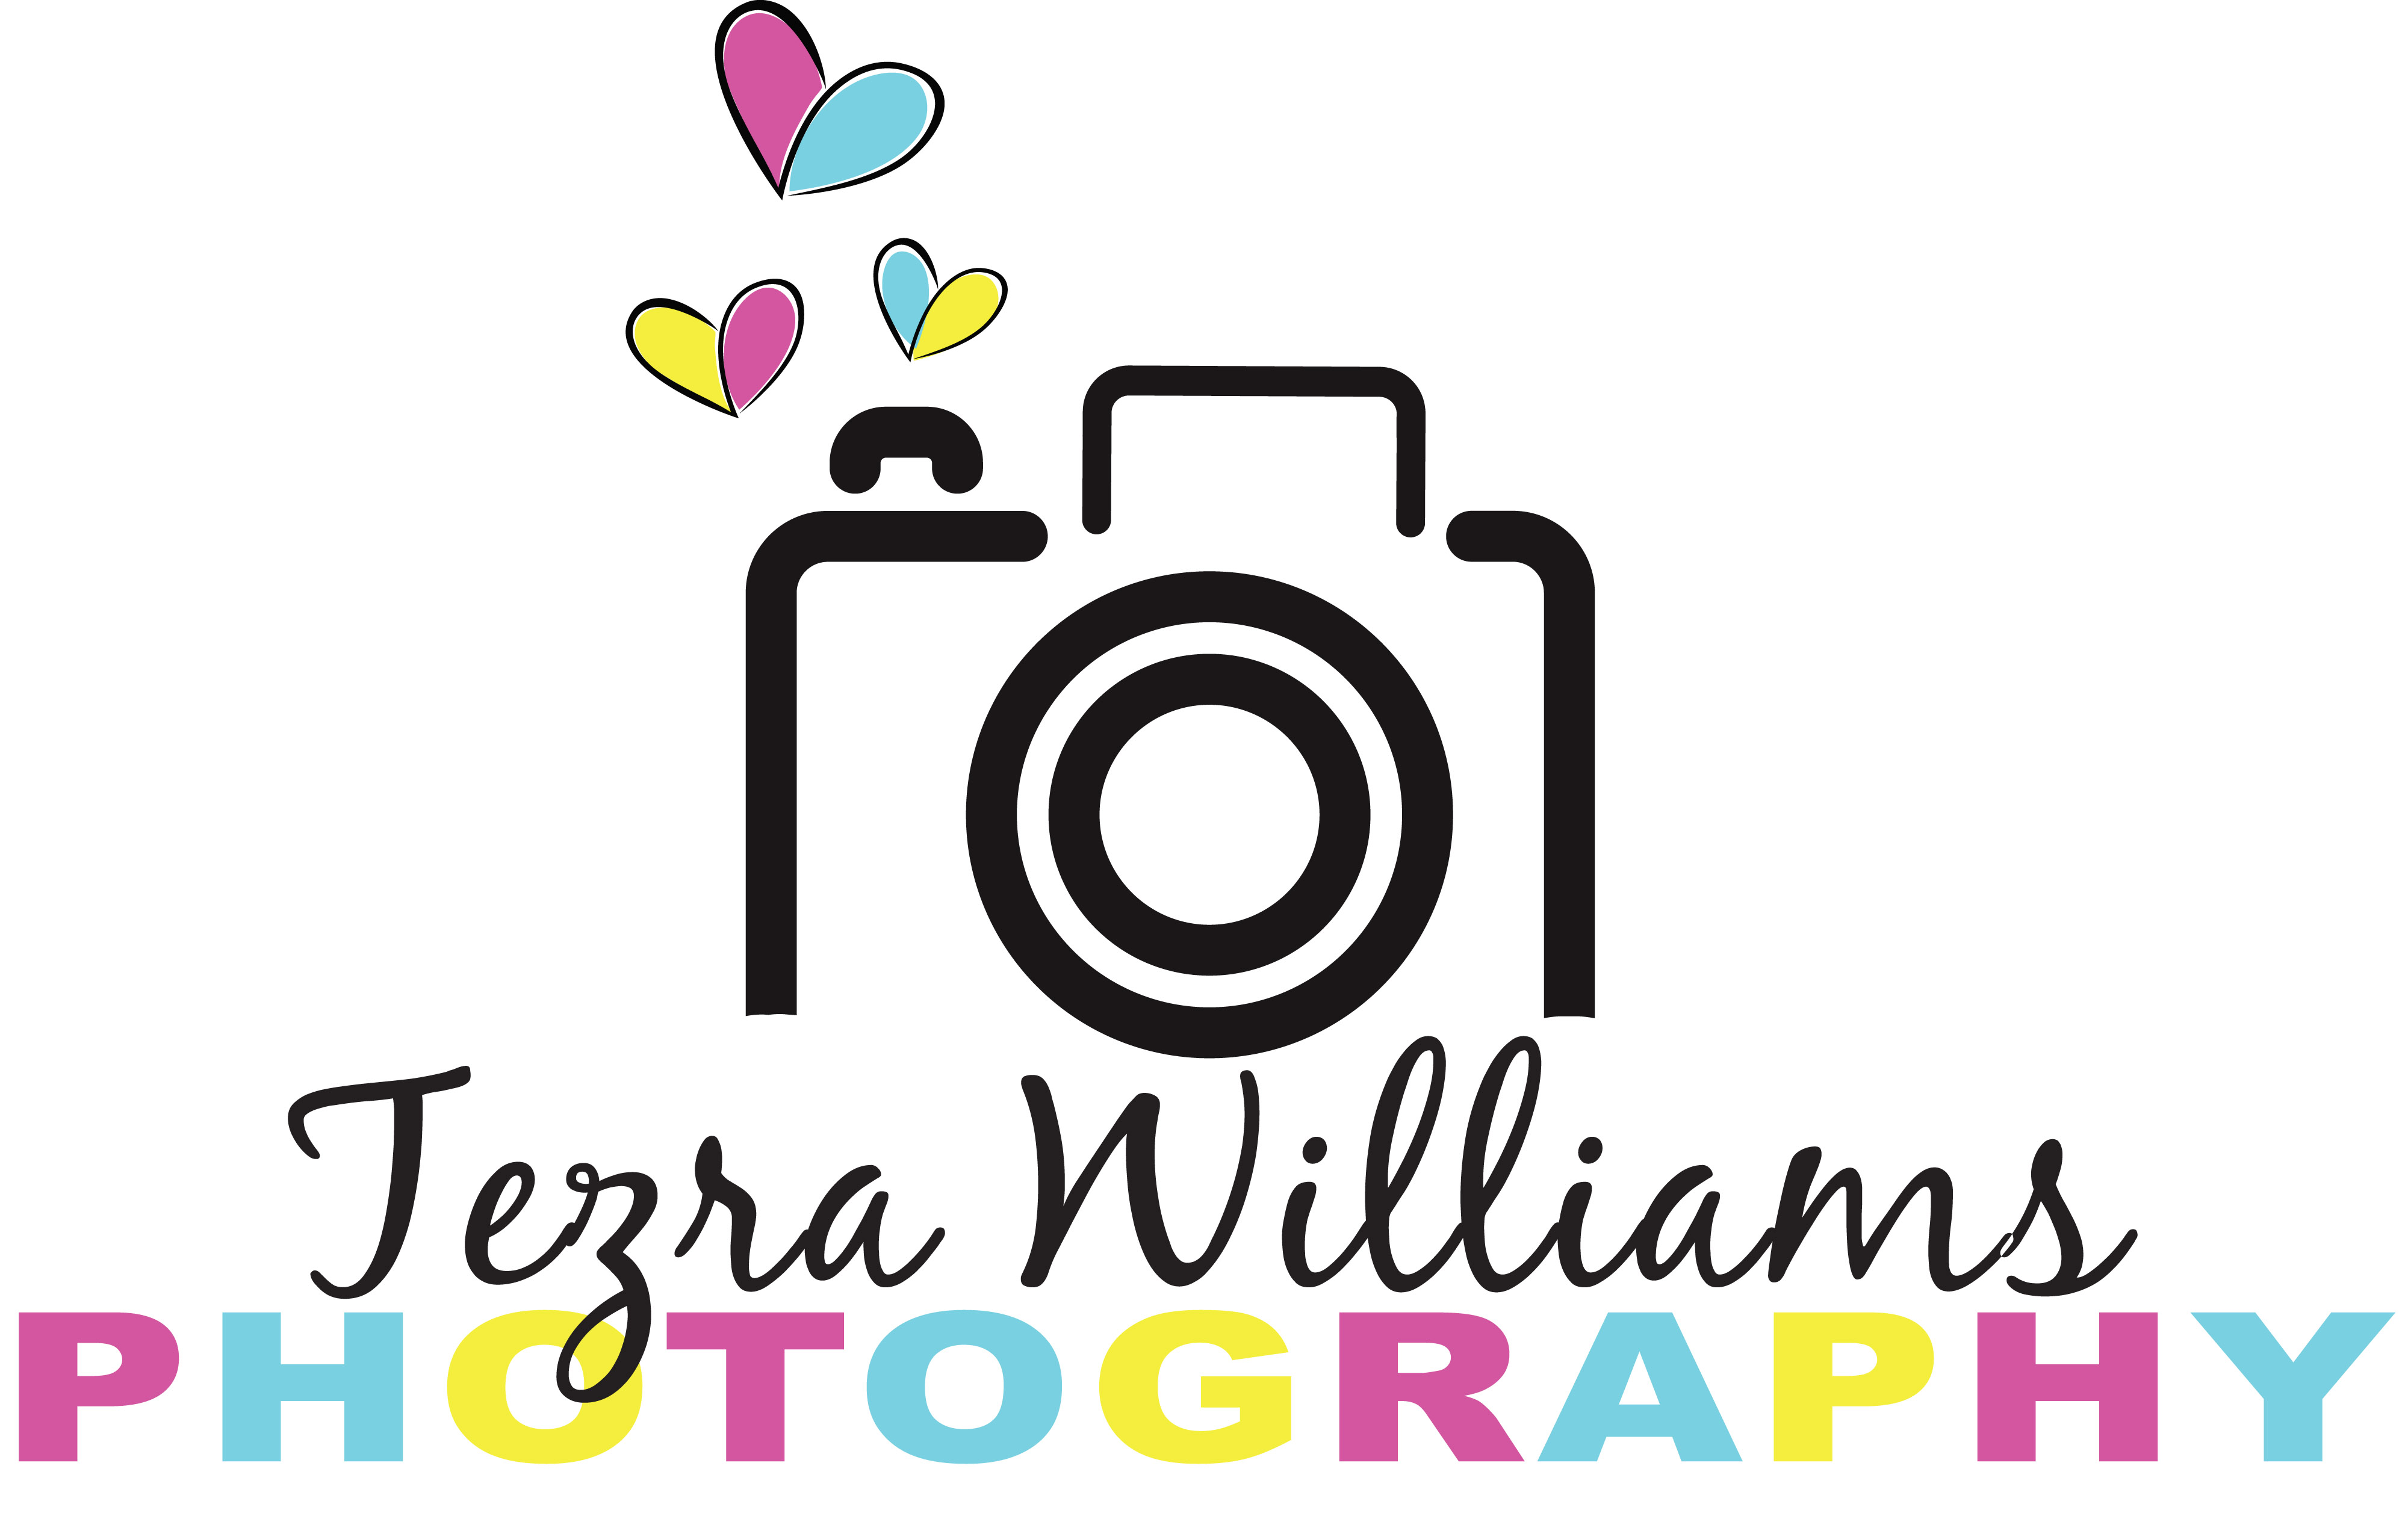 Tezra Williams Photography